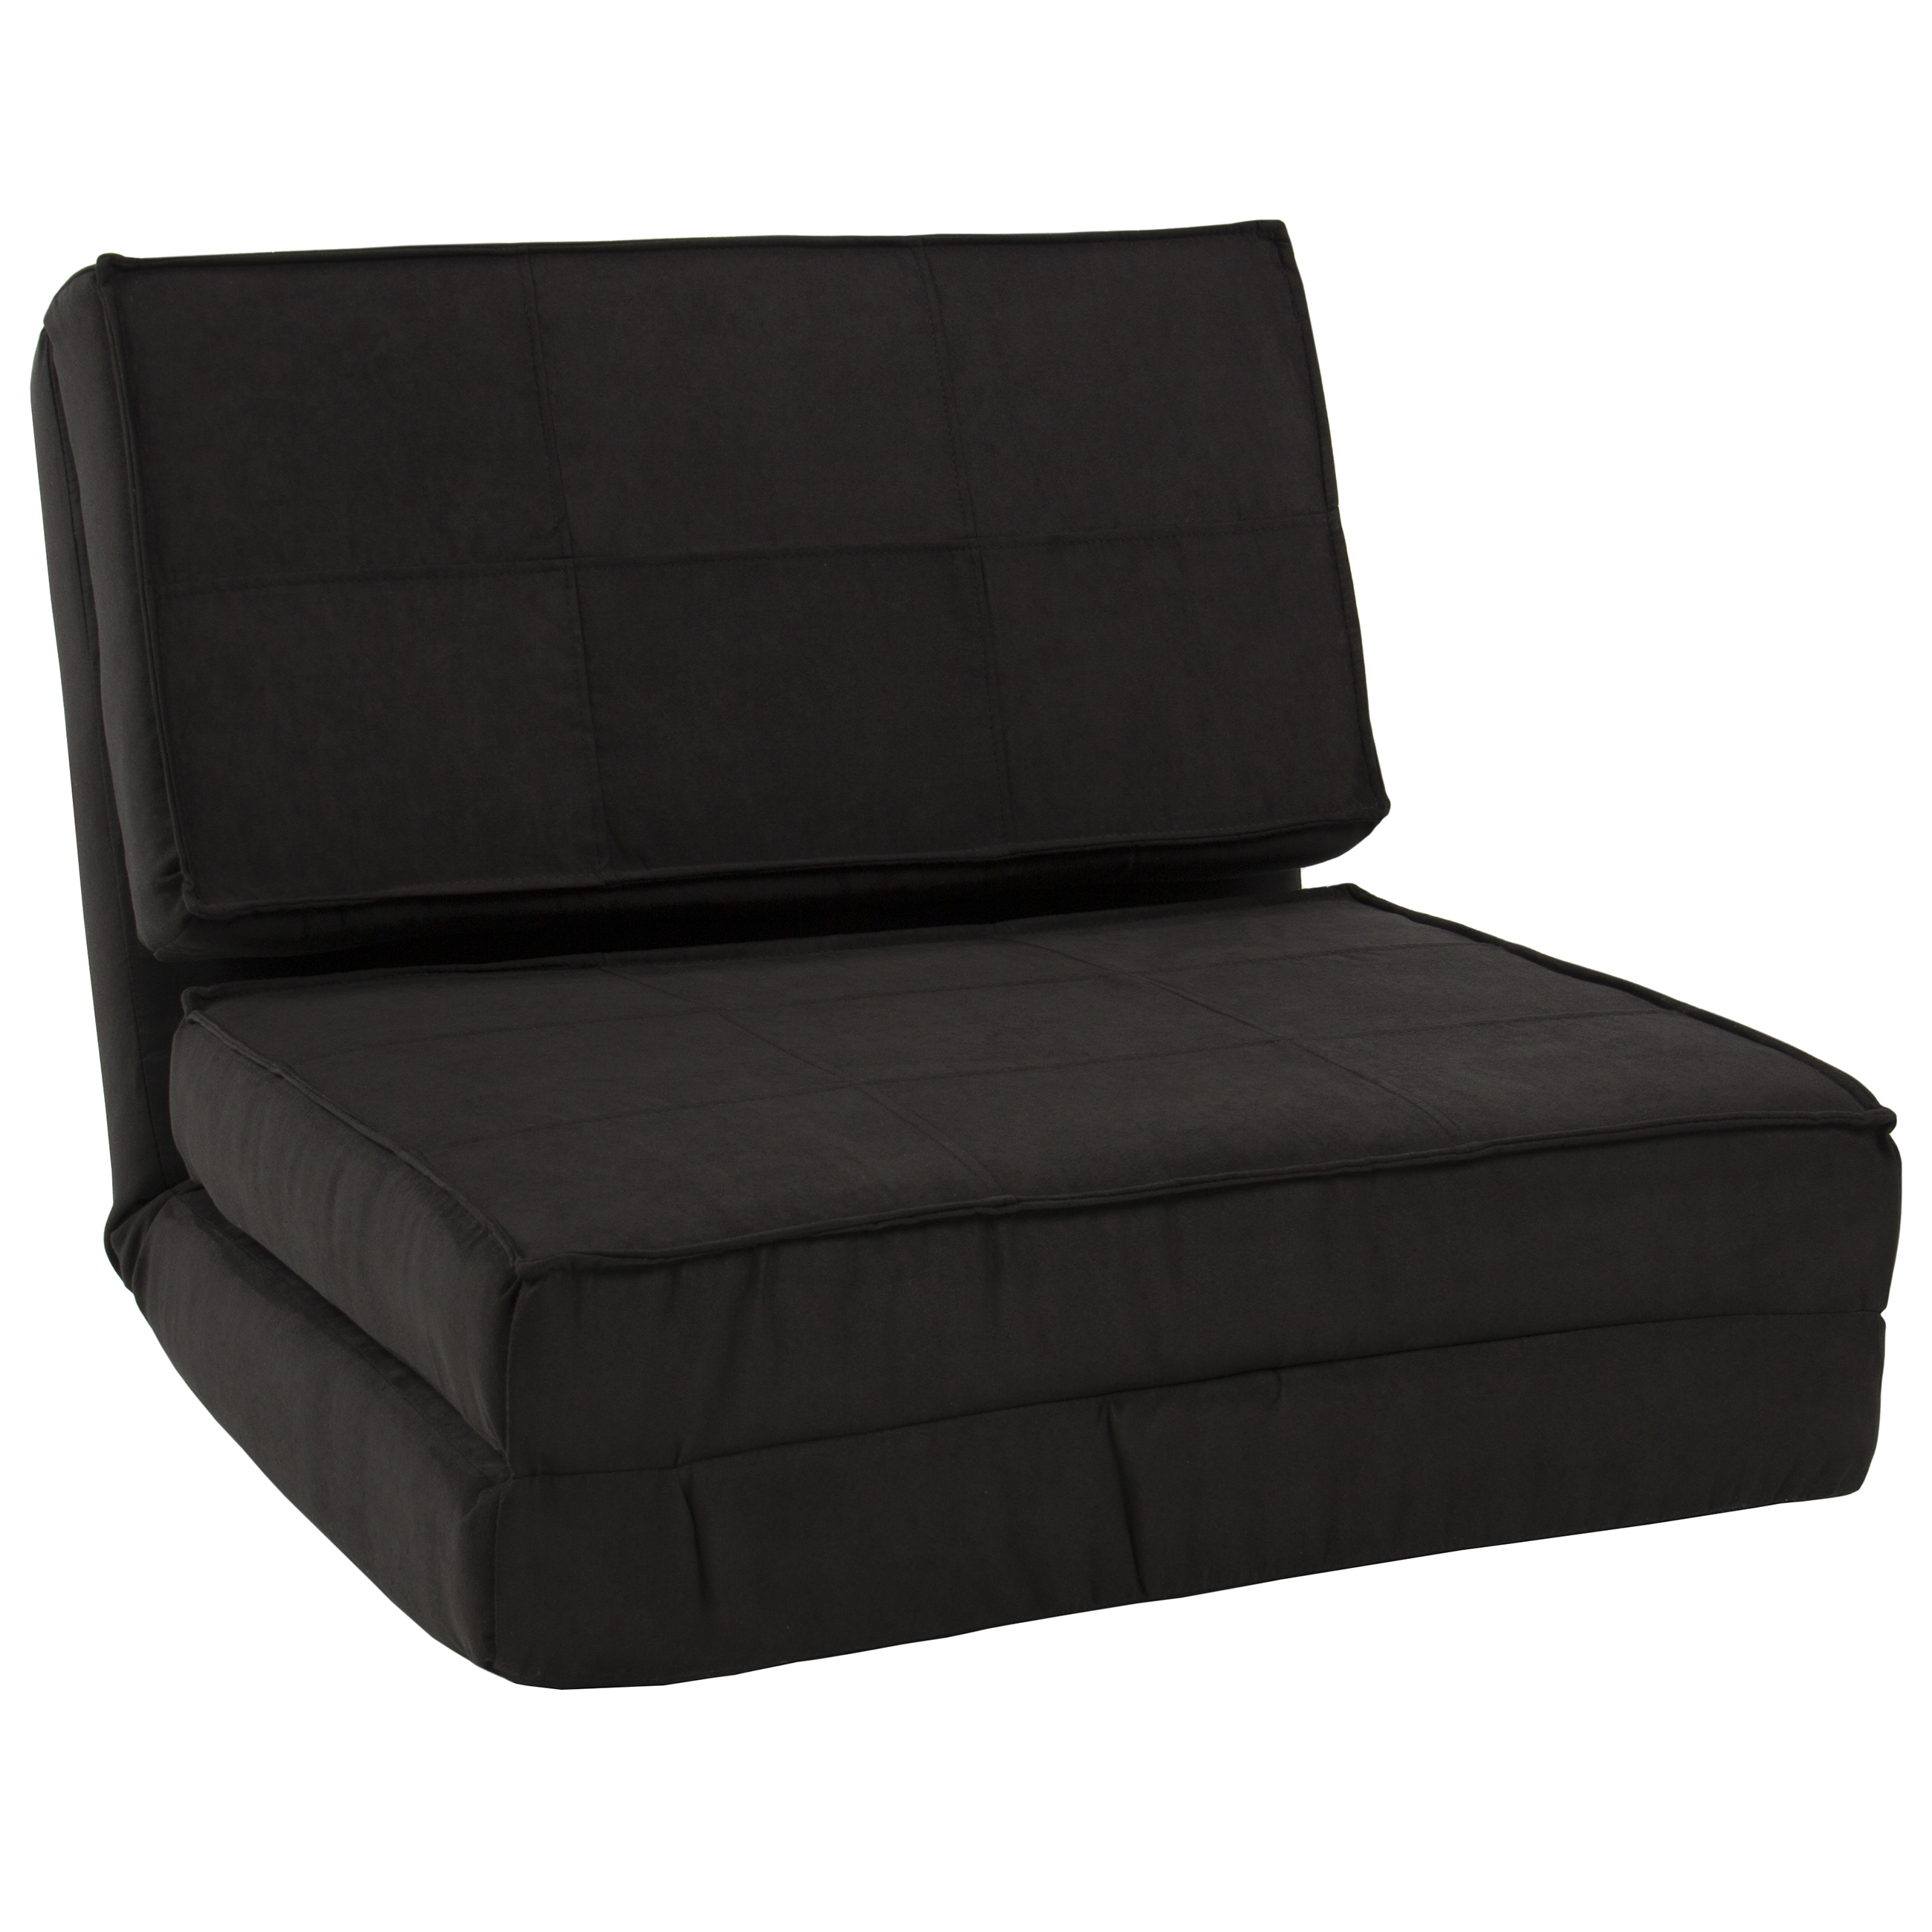 Fold Down Chair Flip Out Lounger Convertible Sleeper Bed Couch In Convertible Sofa Chair Bed (Image 4 of 15)